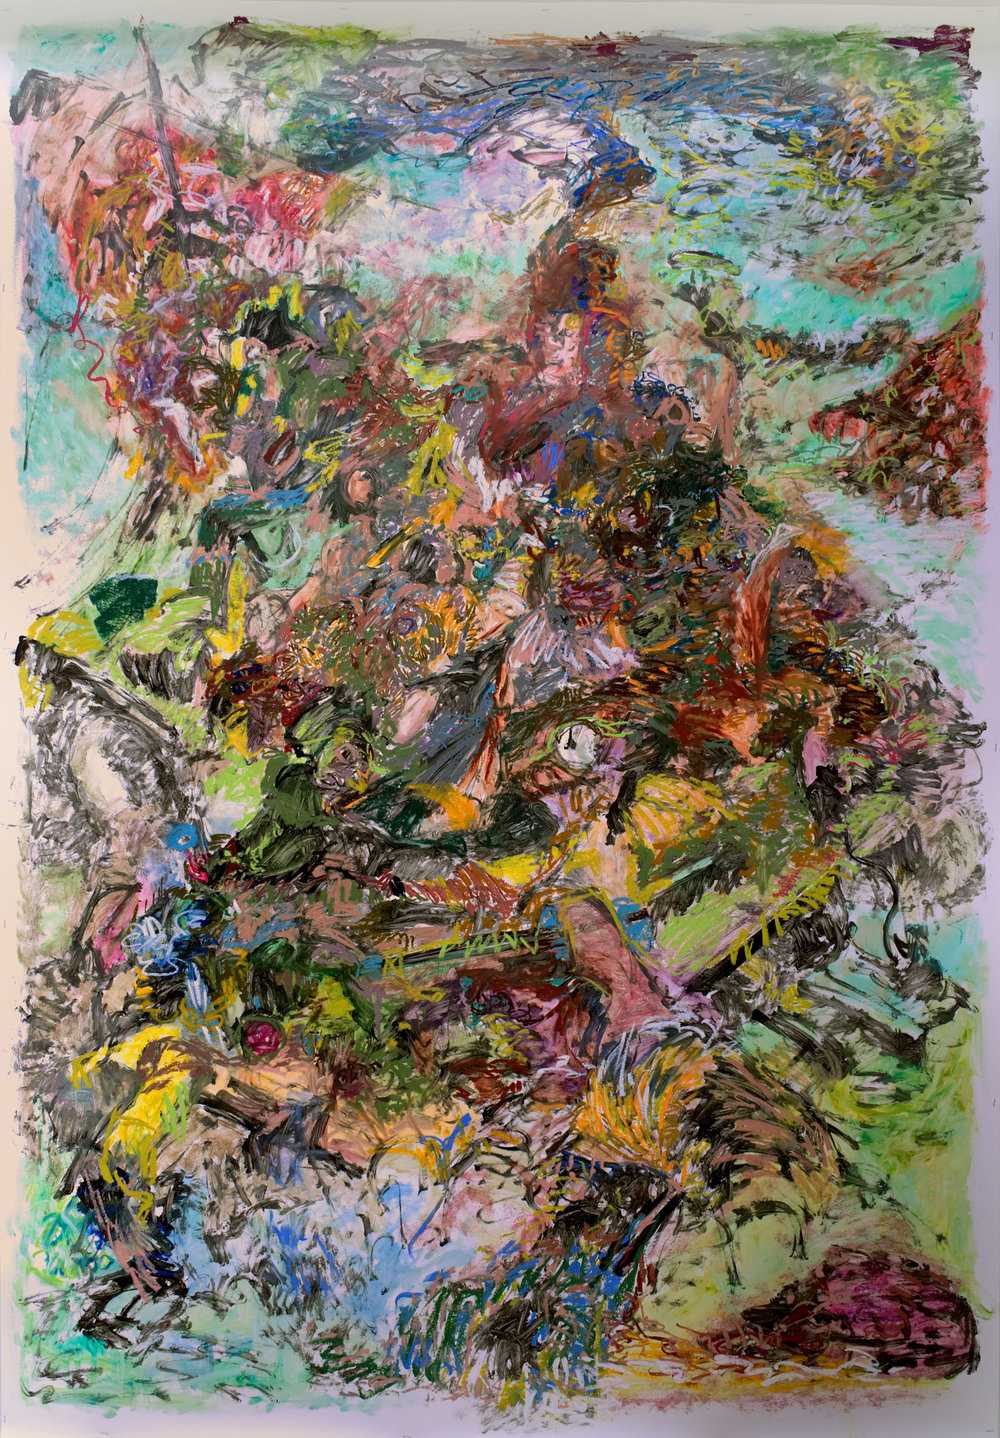 """Salto Mortale  2018, Oil Pastel and Acrylic on Yupo Paper, 60"""" x 86""""  """"Salto Mortale"""" means a dangerous and daring jump with possibly lethal outcome. It reflects my feeling while painting the chaos -- like walking the tightrope between visual dynamics and pandemonium. It also records my summer experience in a residency in Norway where I jumped into the deep cold sea to learn how to swim."""